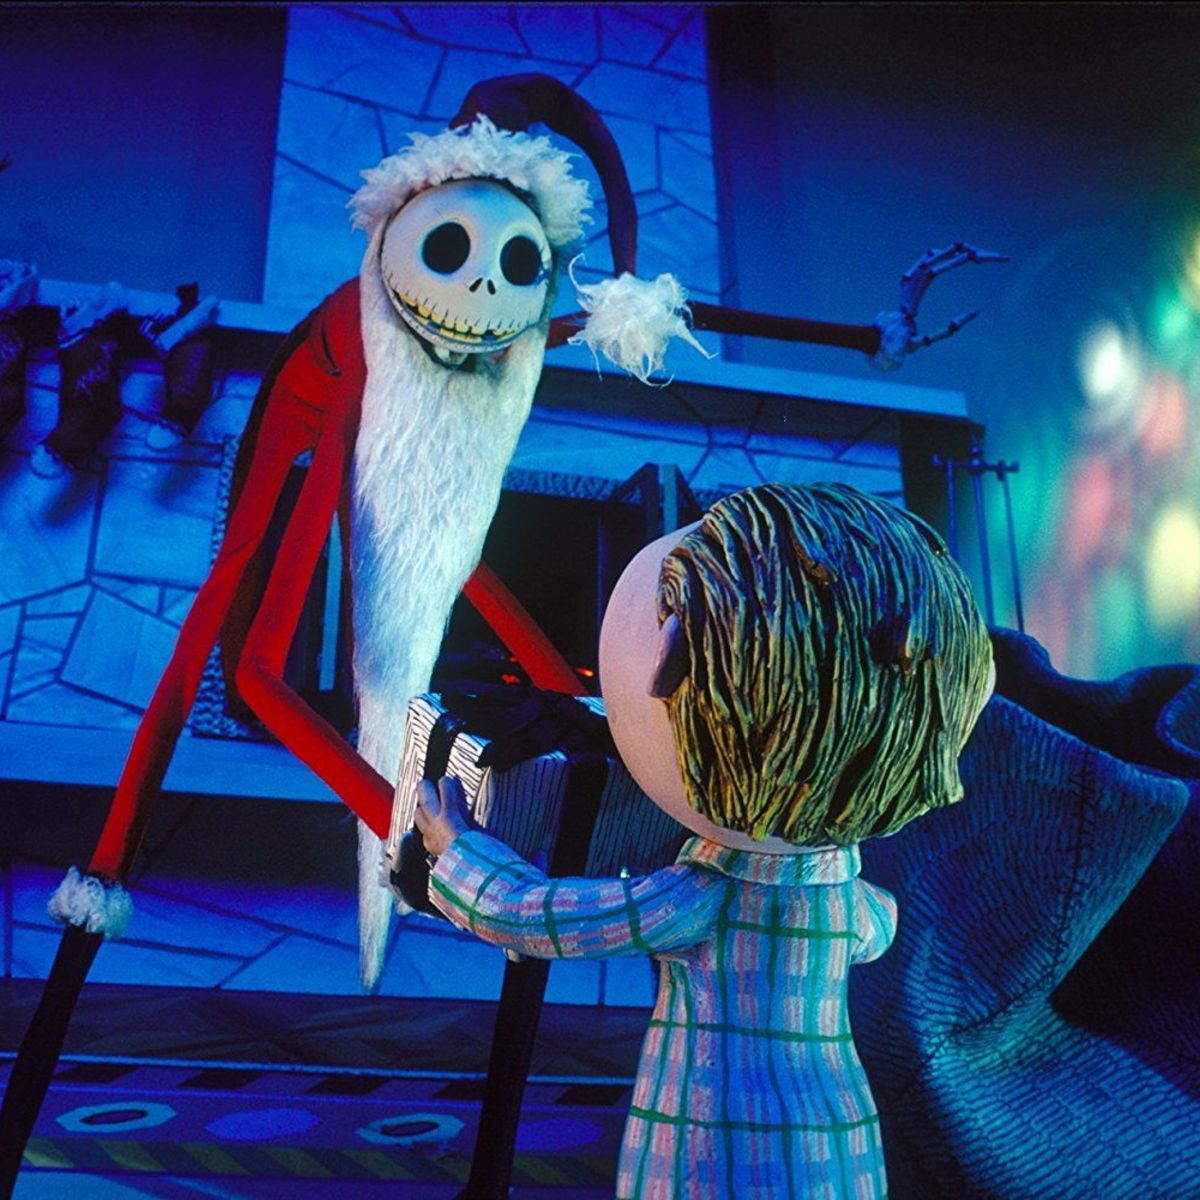 the nightmare before christmas getting la live show for 25th birthday